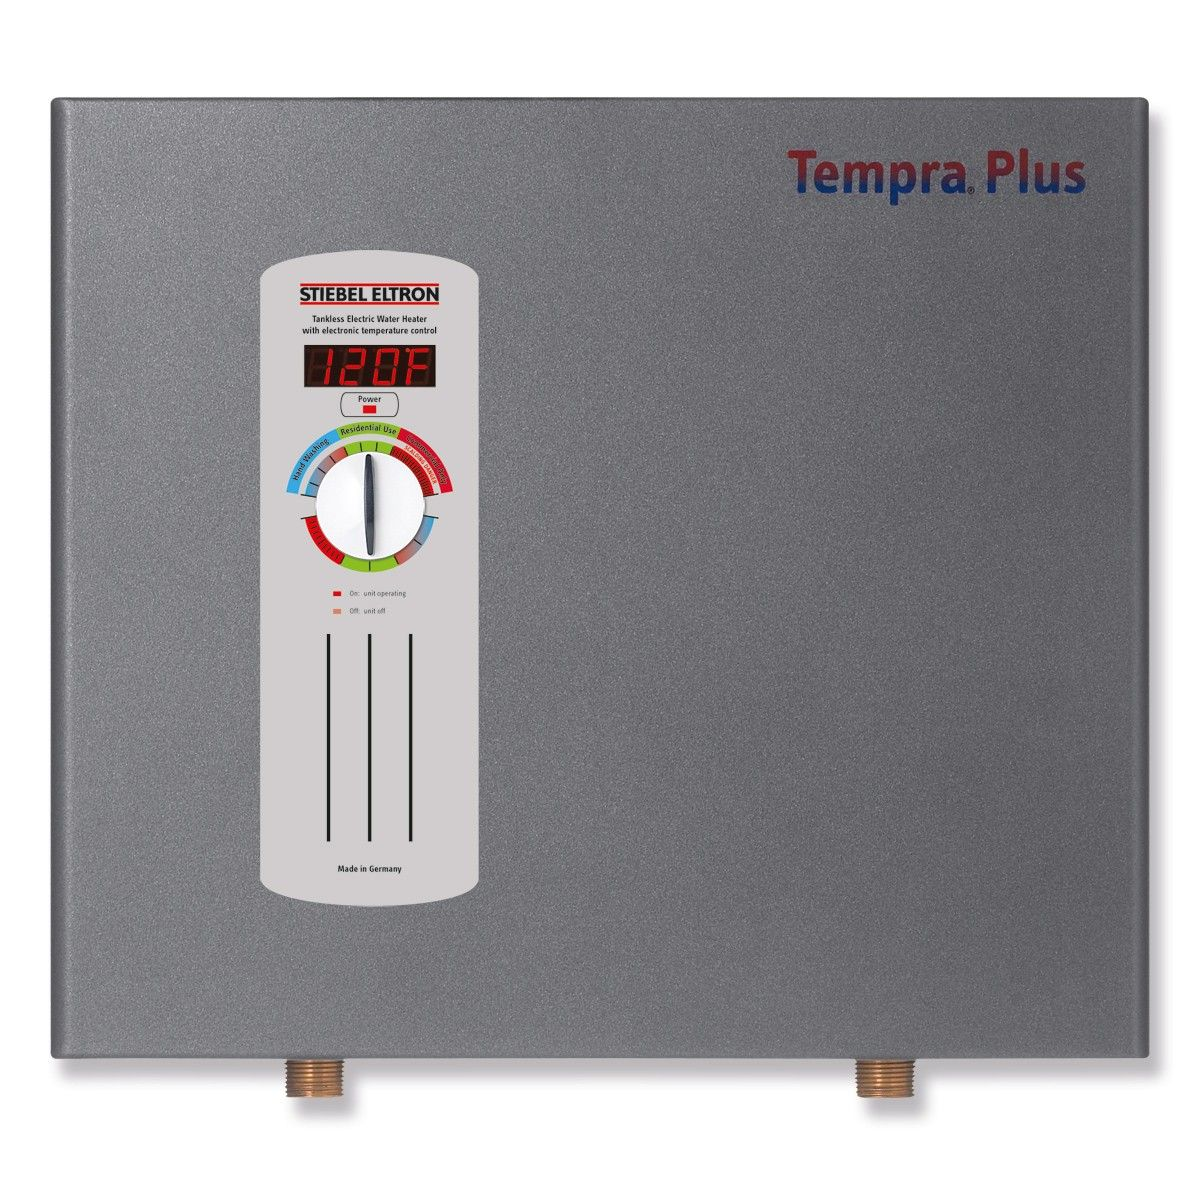 ELECTRIC WATER HEATER TEMPRA 20 PLUS